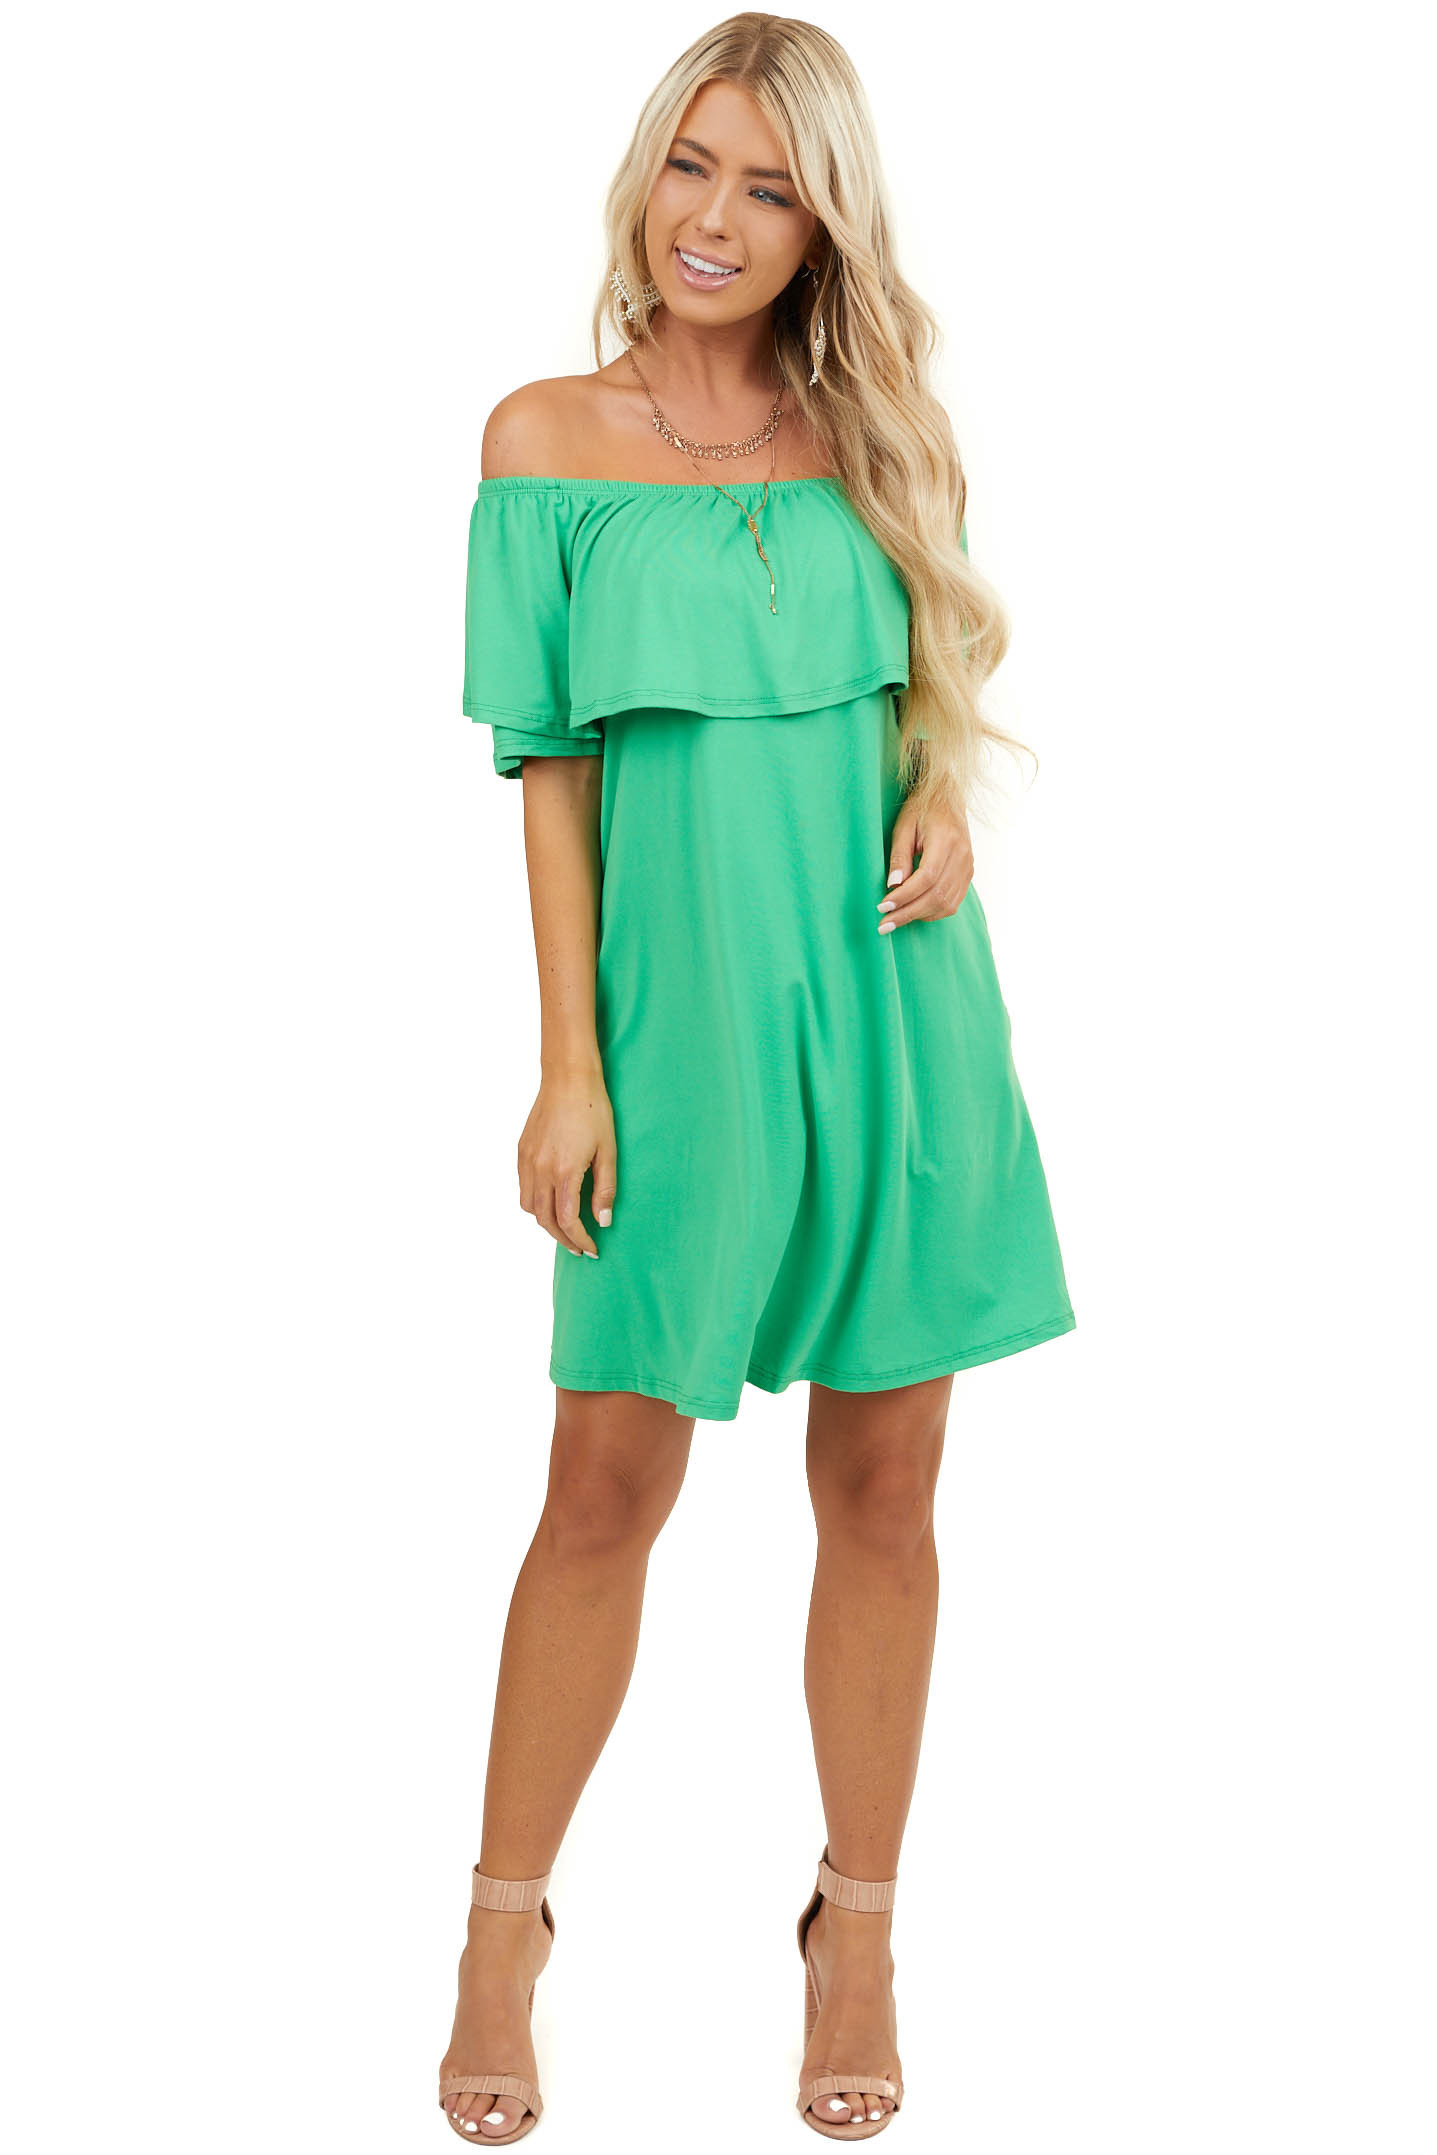 Kelly Green Off Shoulder Dress with Bust Overlay and Pockets